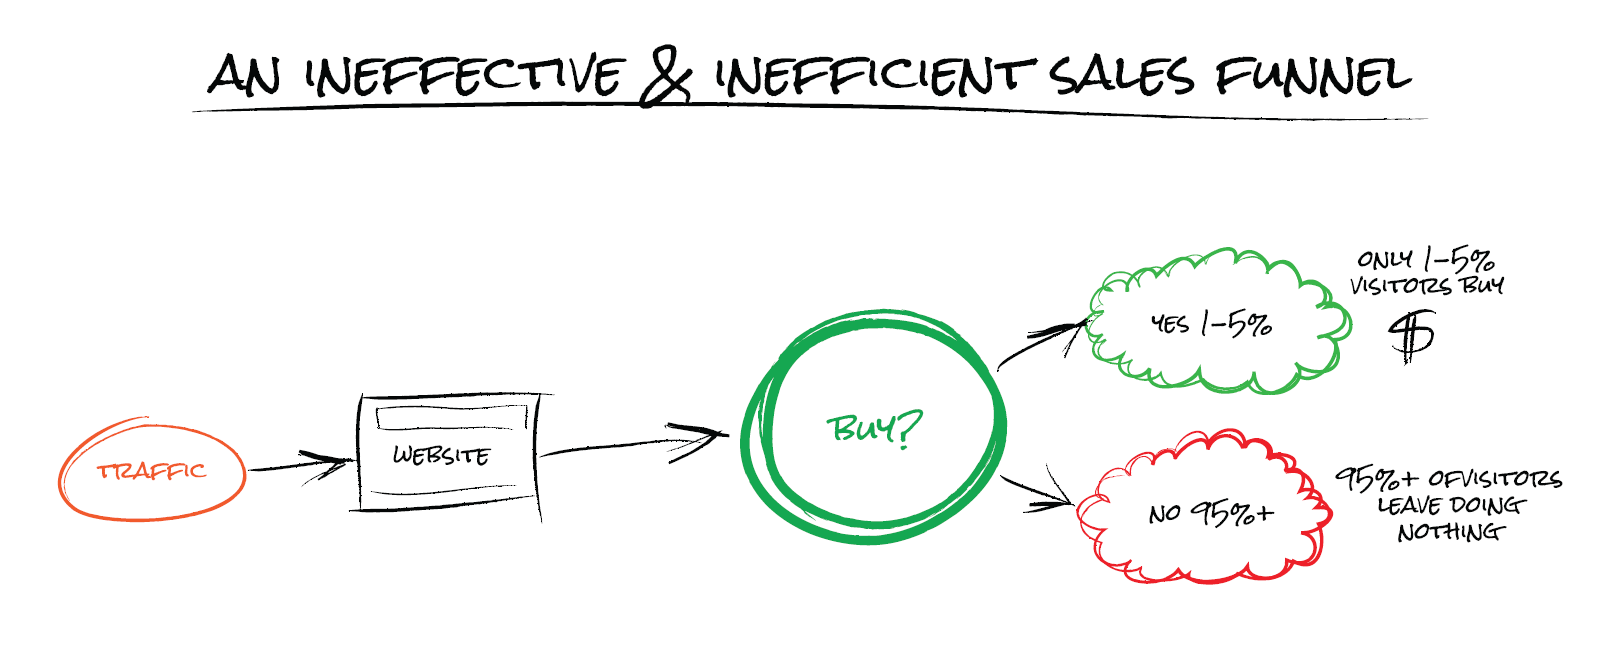 inefficient sales funnel